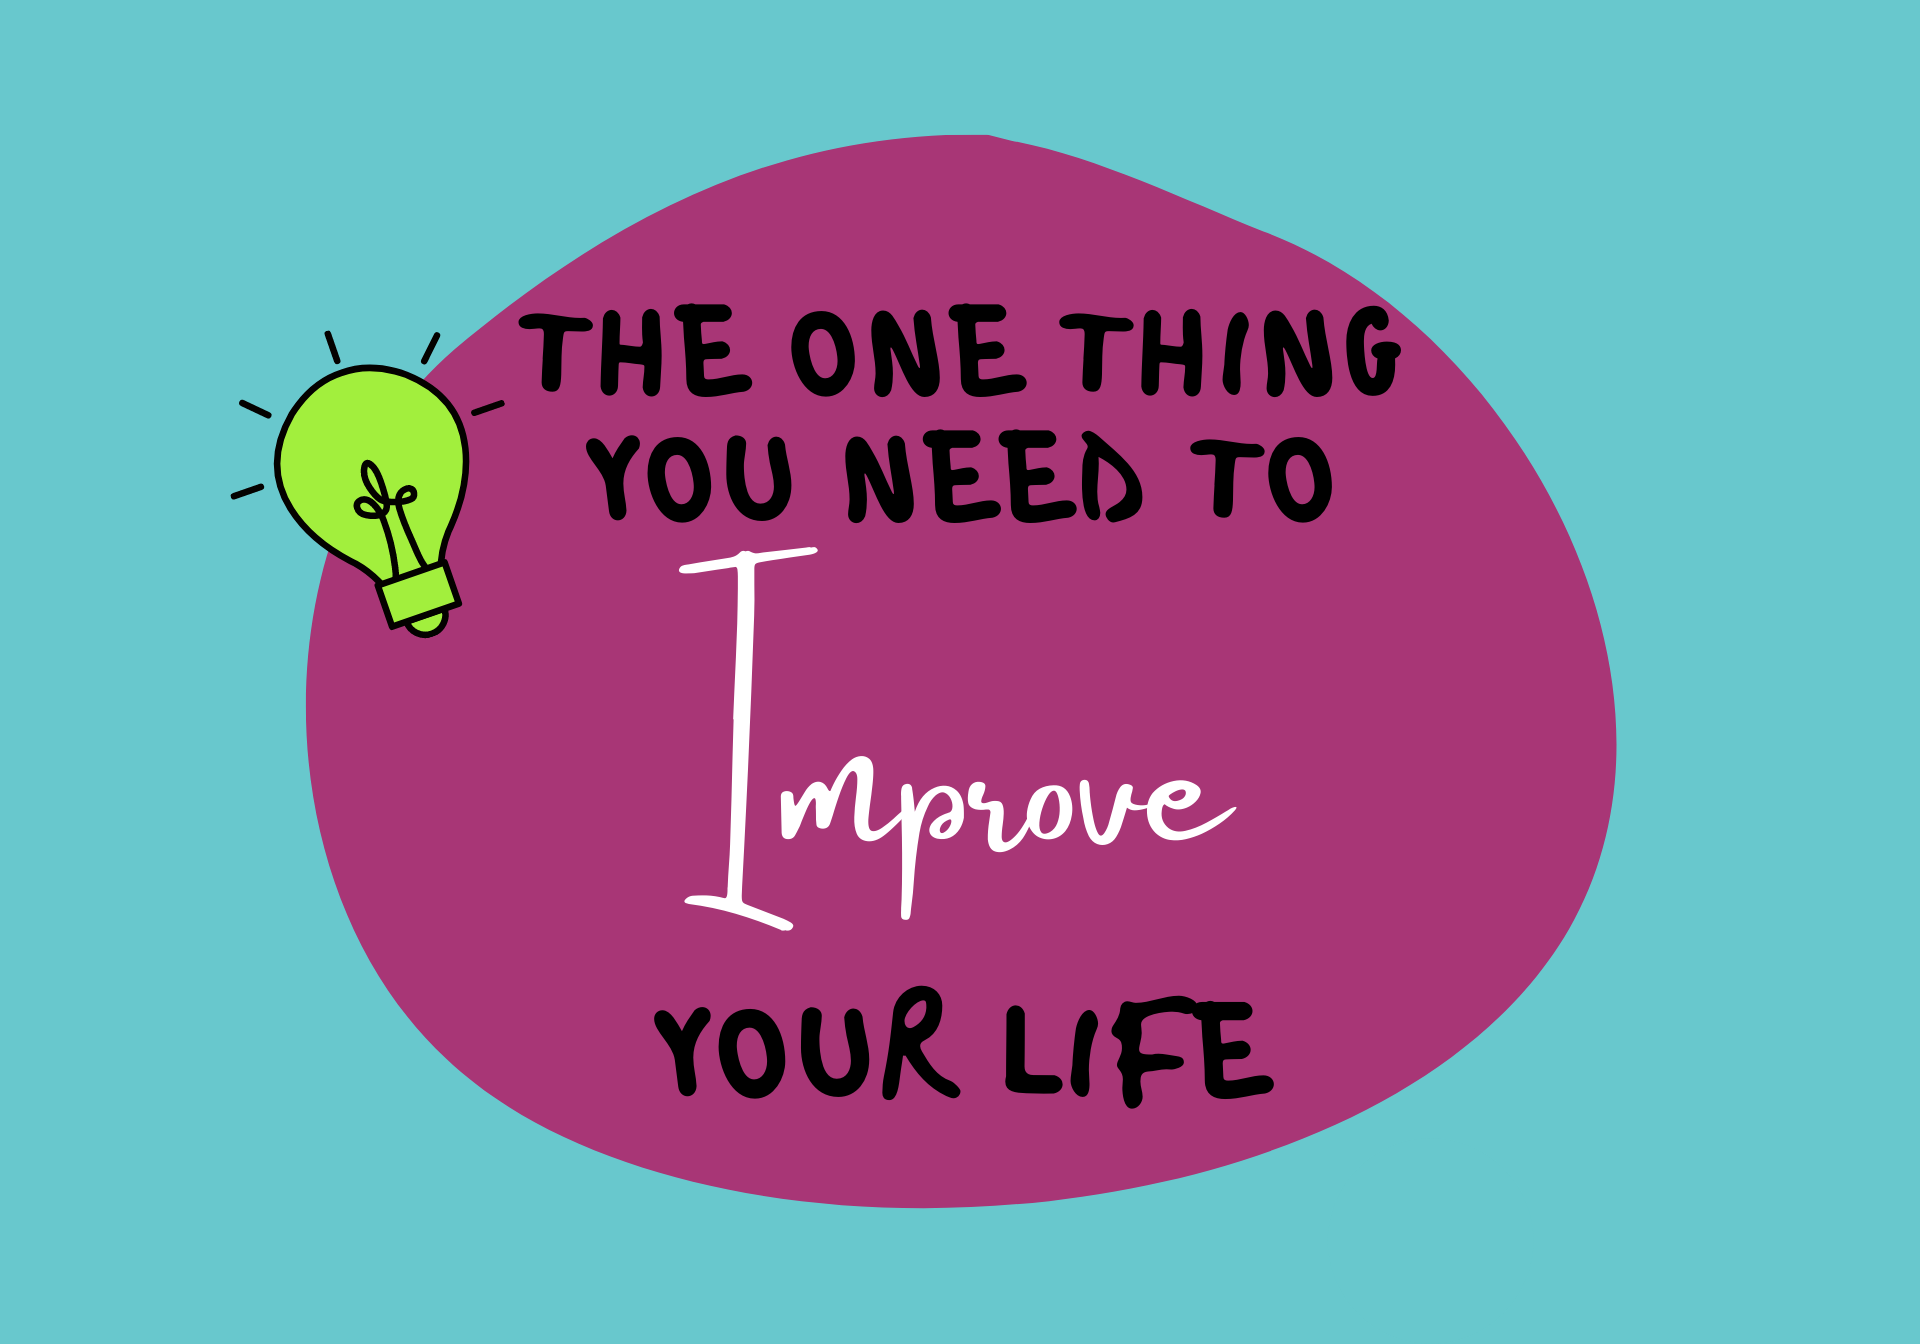 SYO46 The One Thing You Need To Improve Your Life